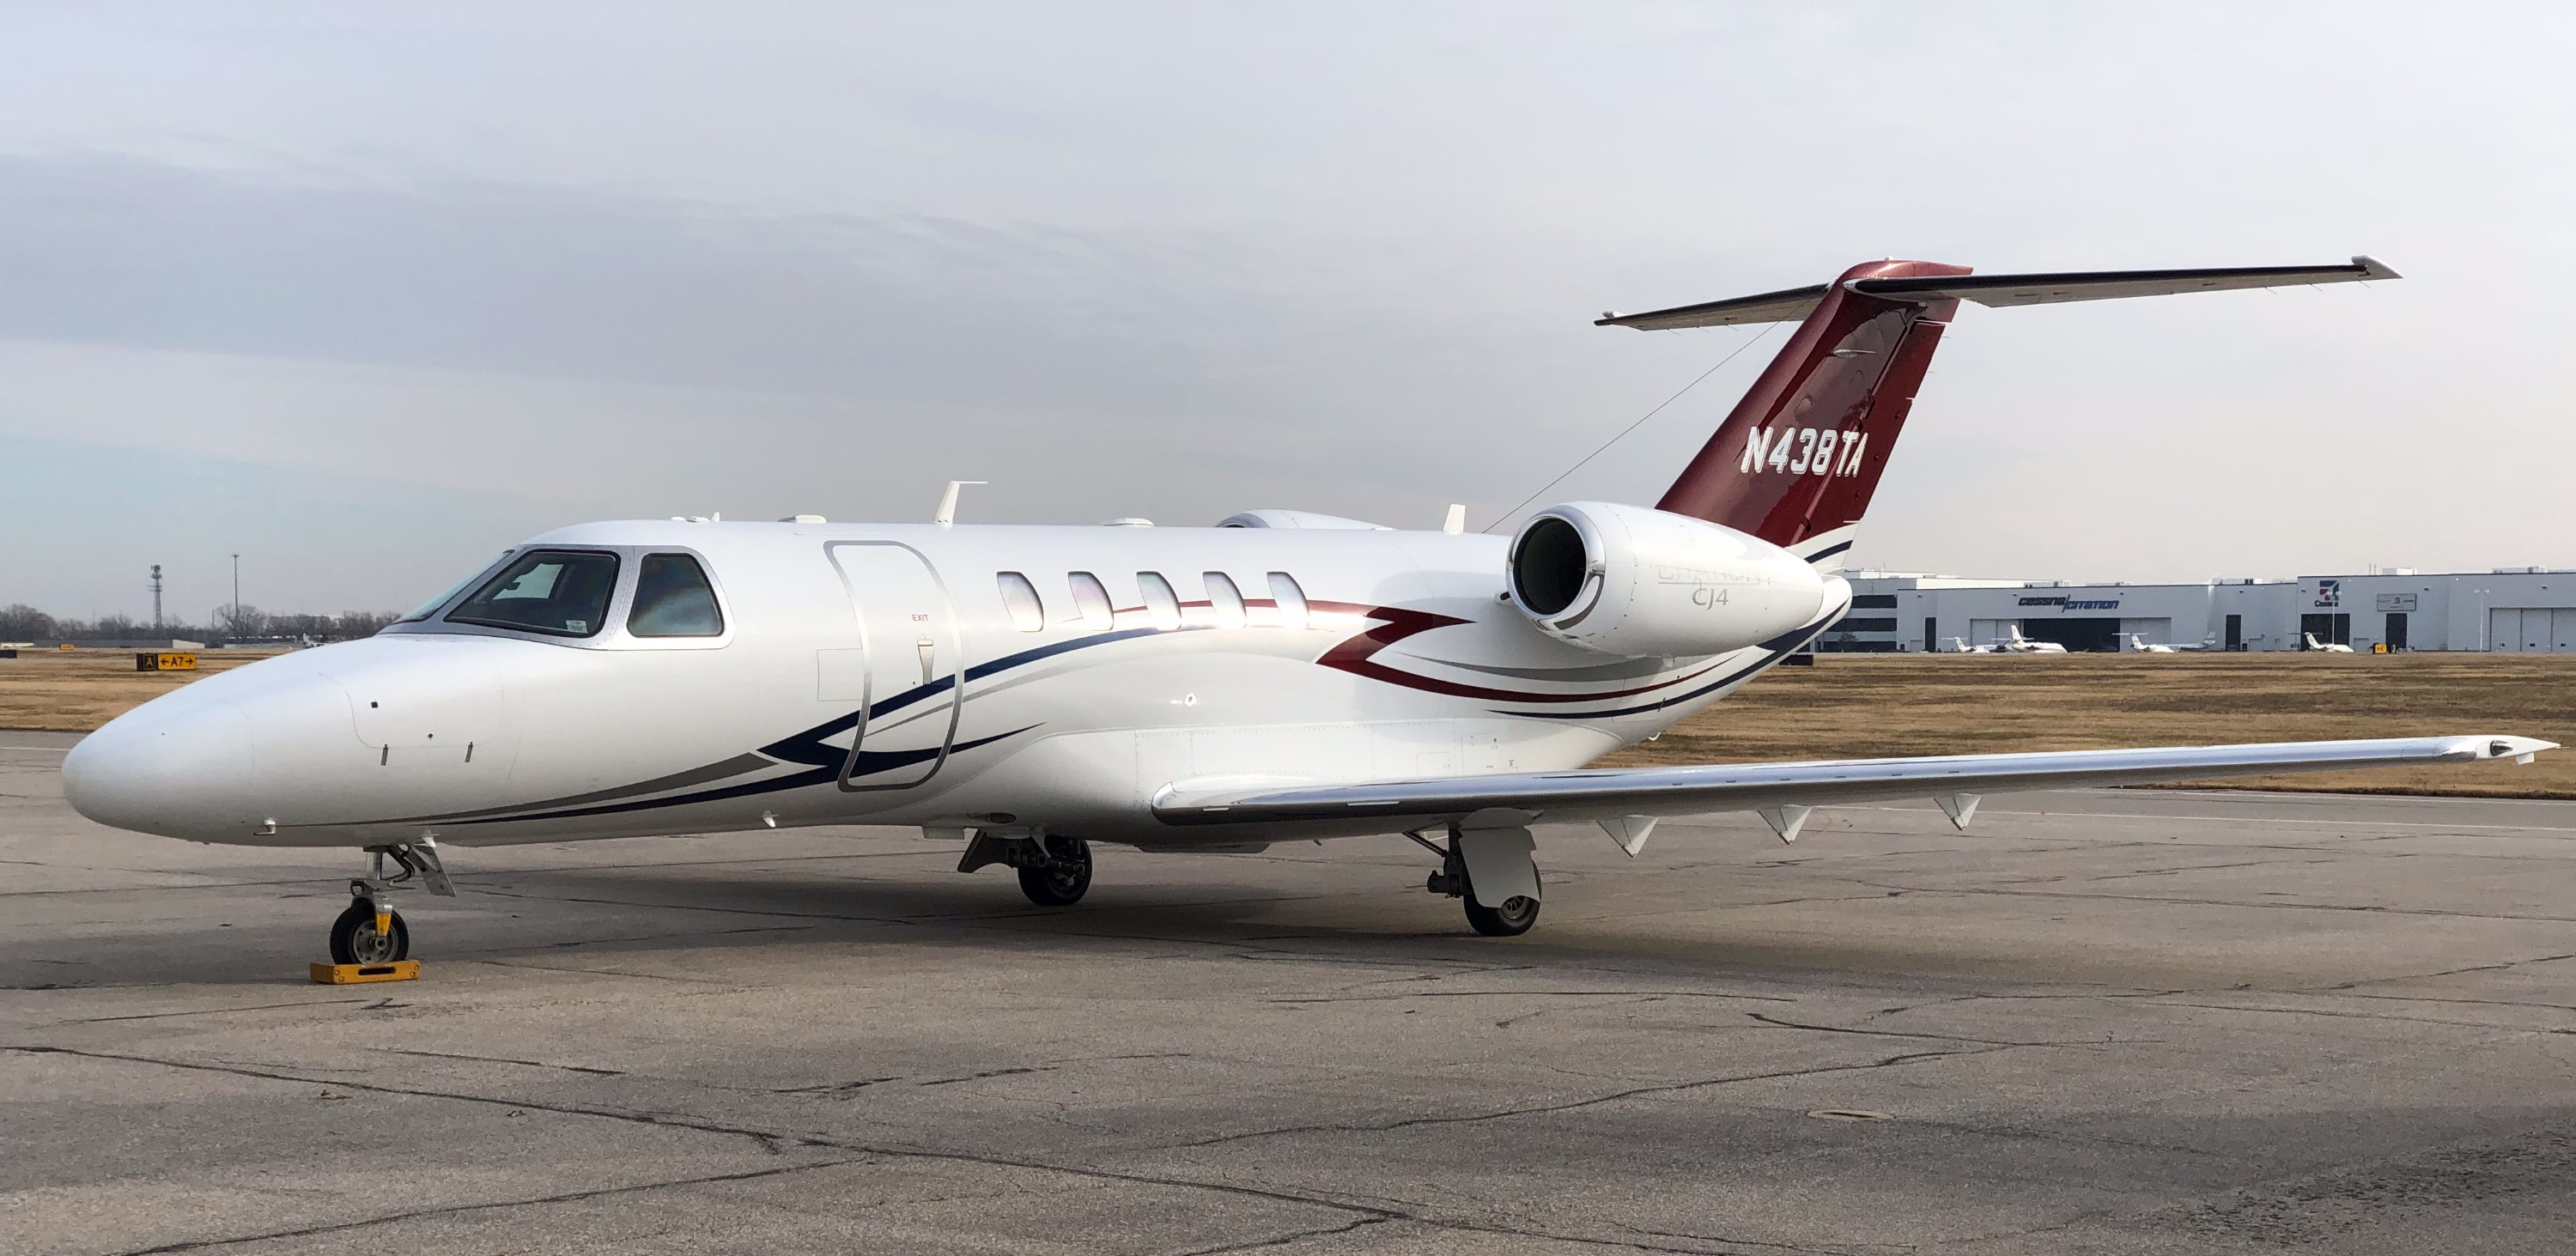 Citation CJ4 SN 525C-0038